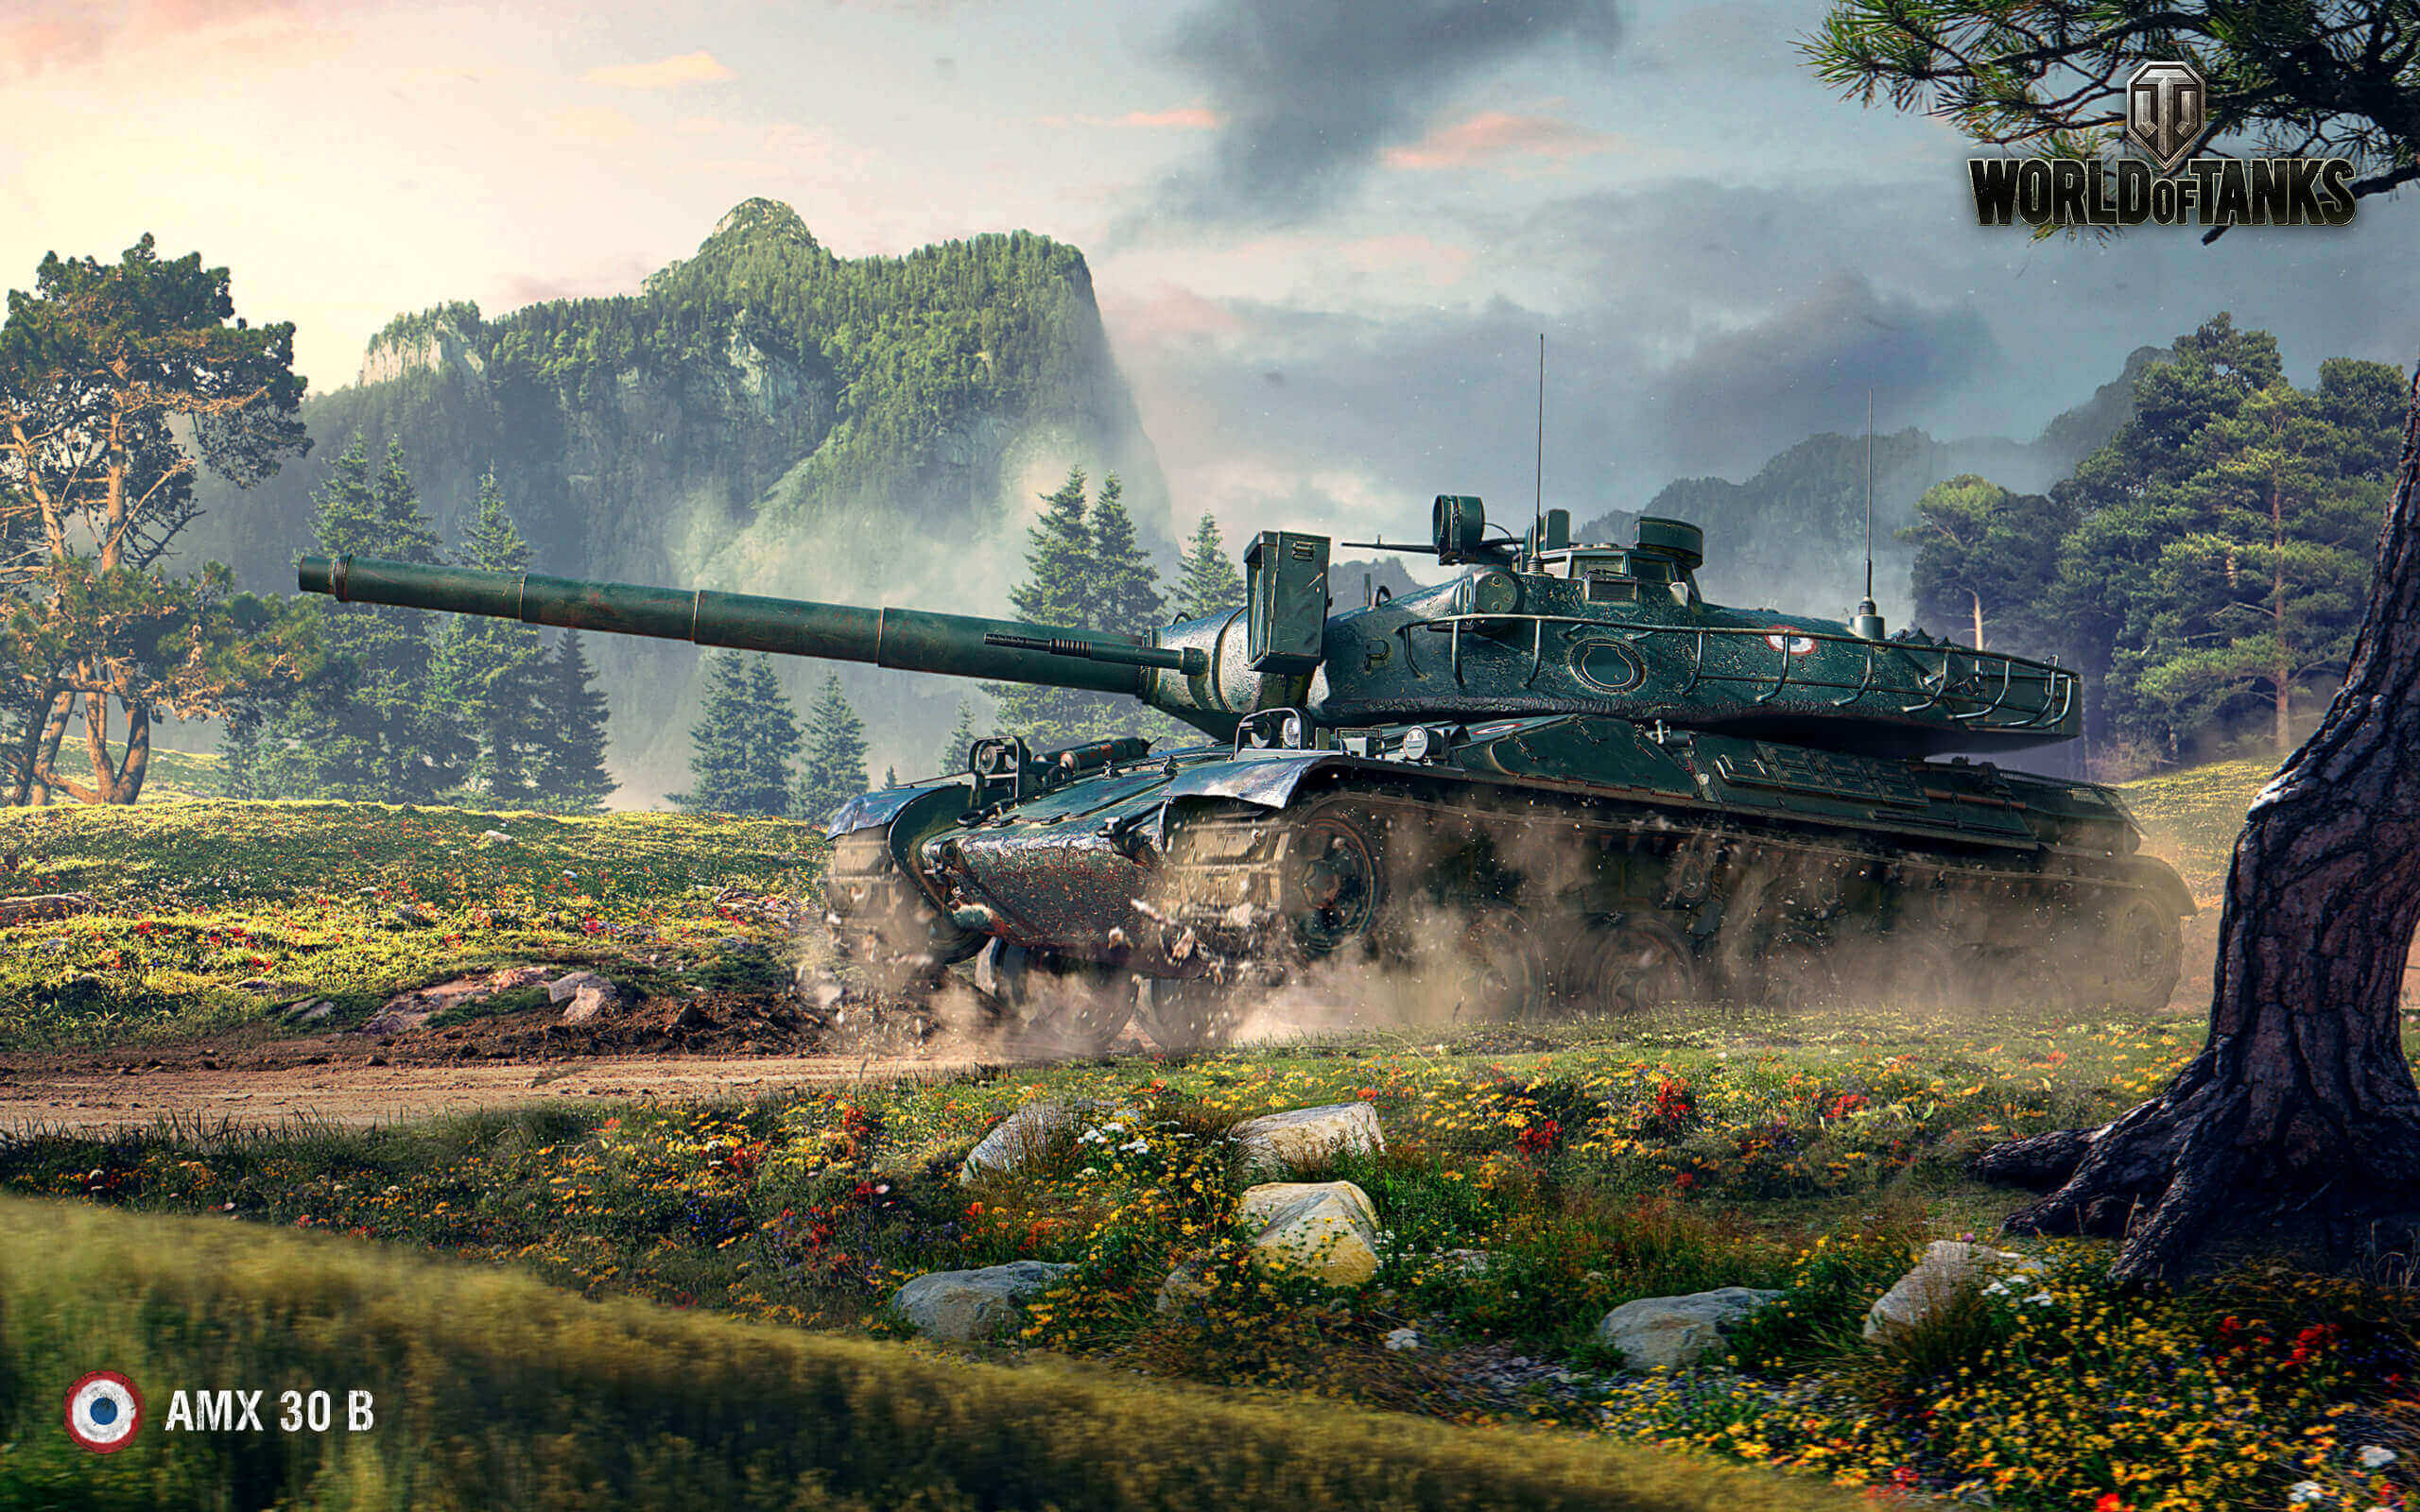 April 2015 Wallpaper AMX 30 B